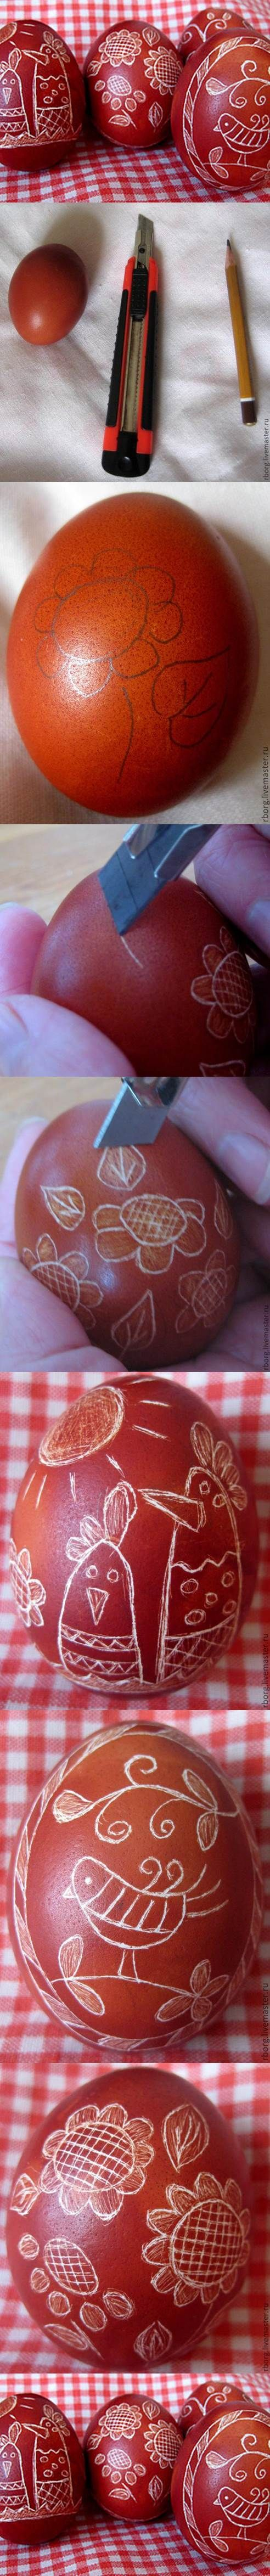 DIY Uniquely Decorated Easter Eggs | iCreativeIdeas.com Like Us on Facebook ==> https://www.facebook.com/icreativeideas